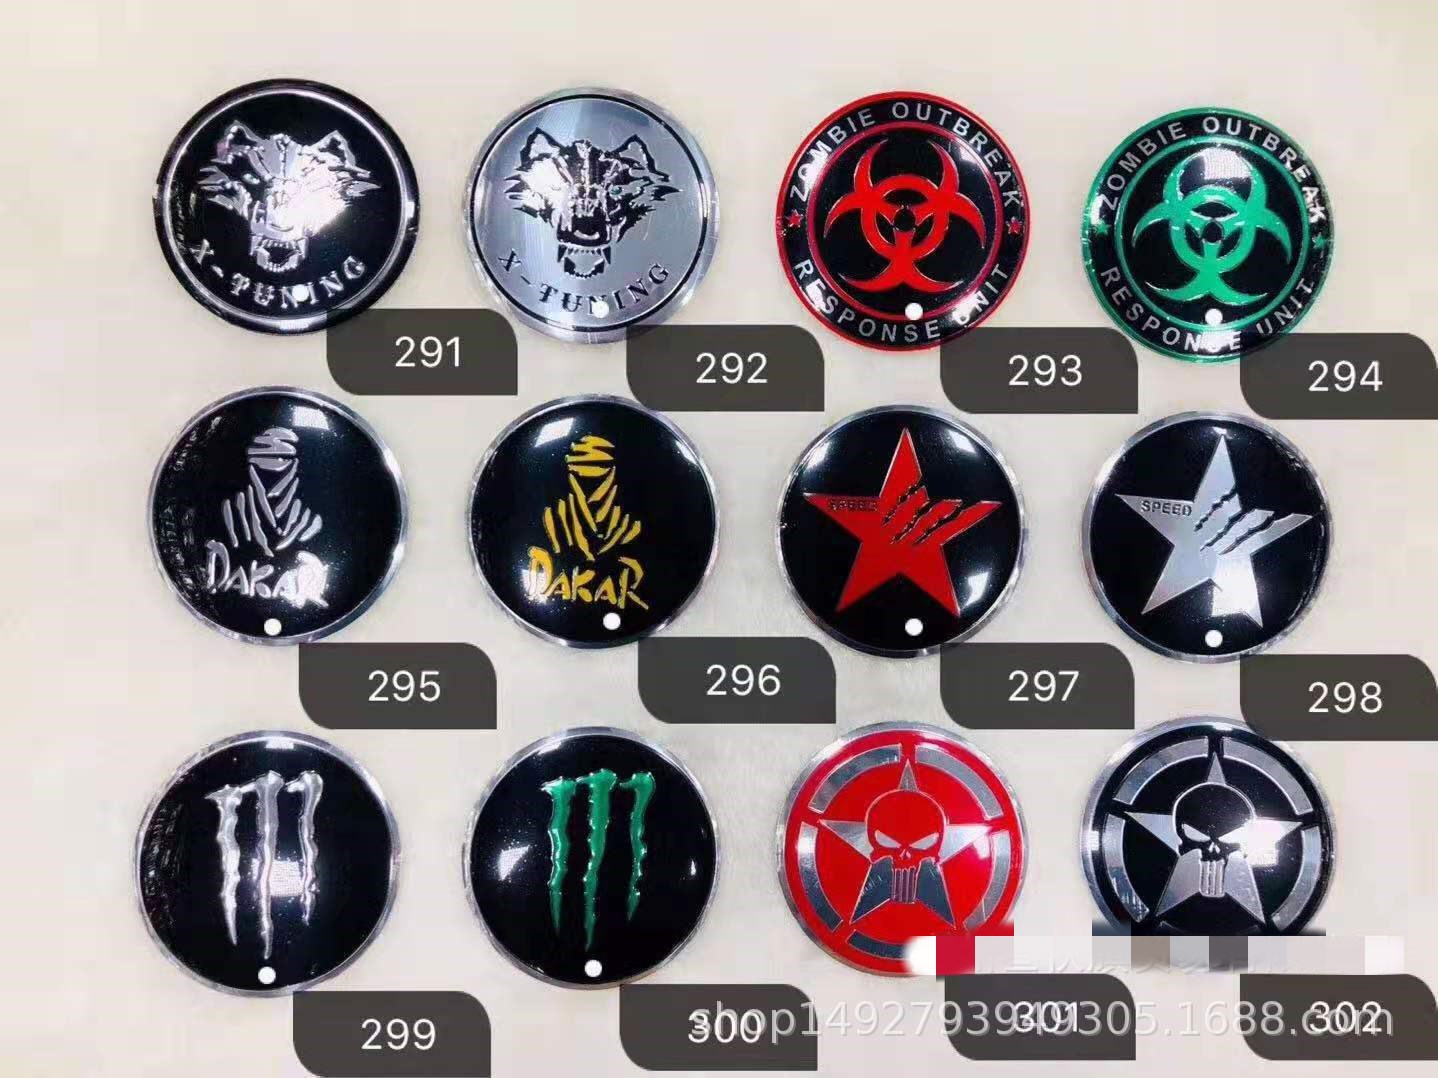 Power logo Car Decoration Rear Sticker Alloy Metal Power Badge Emblem fits most make and models 3D Black Plated ////// Power Car styling Blue